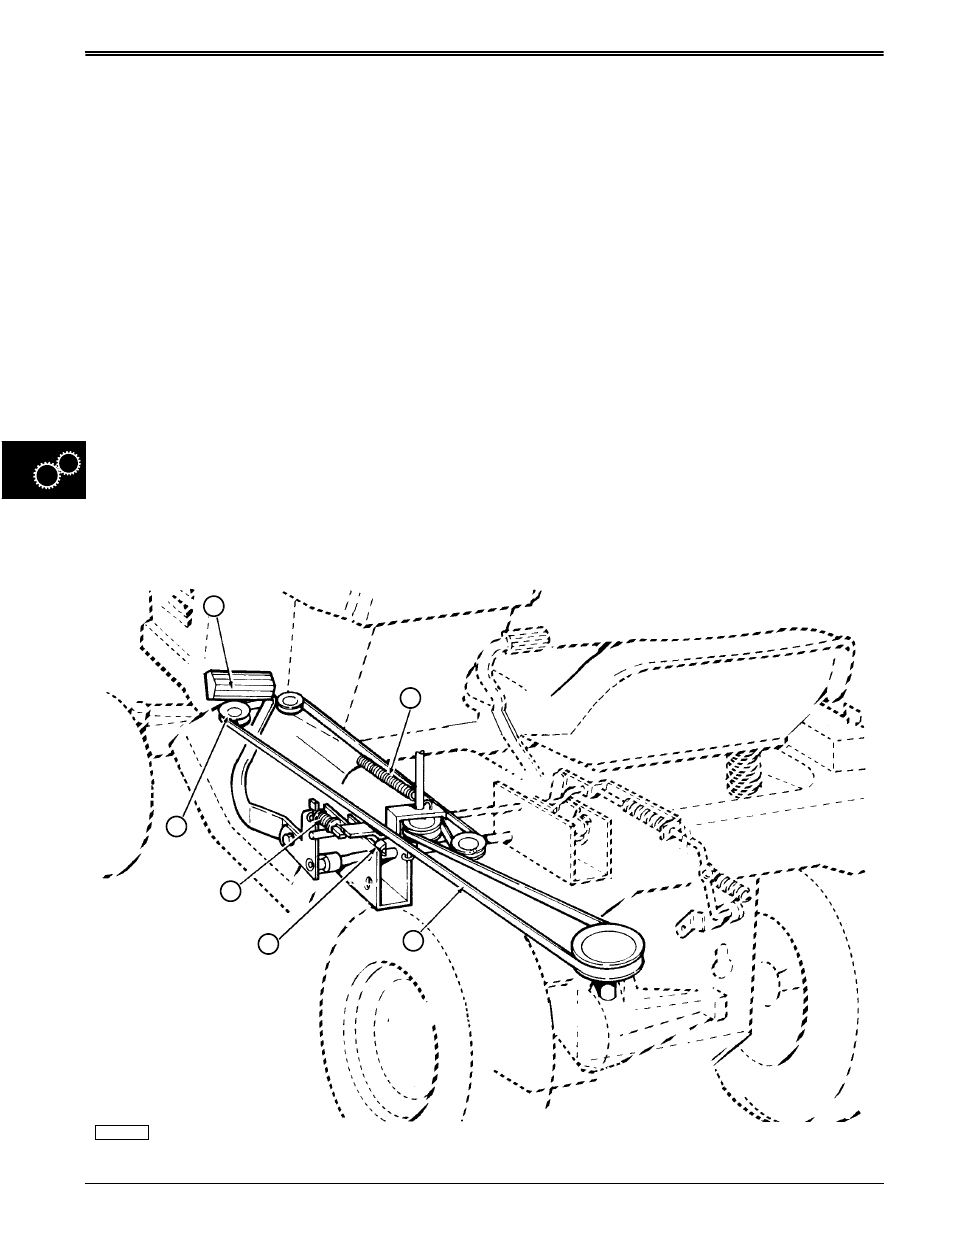 John Deere Stx 38 Belt Diagram